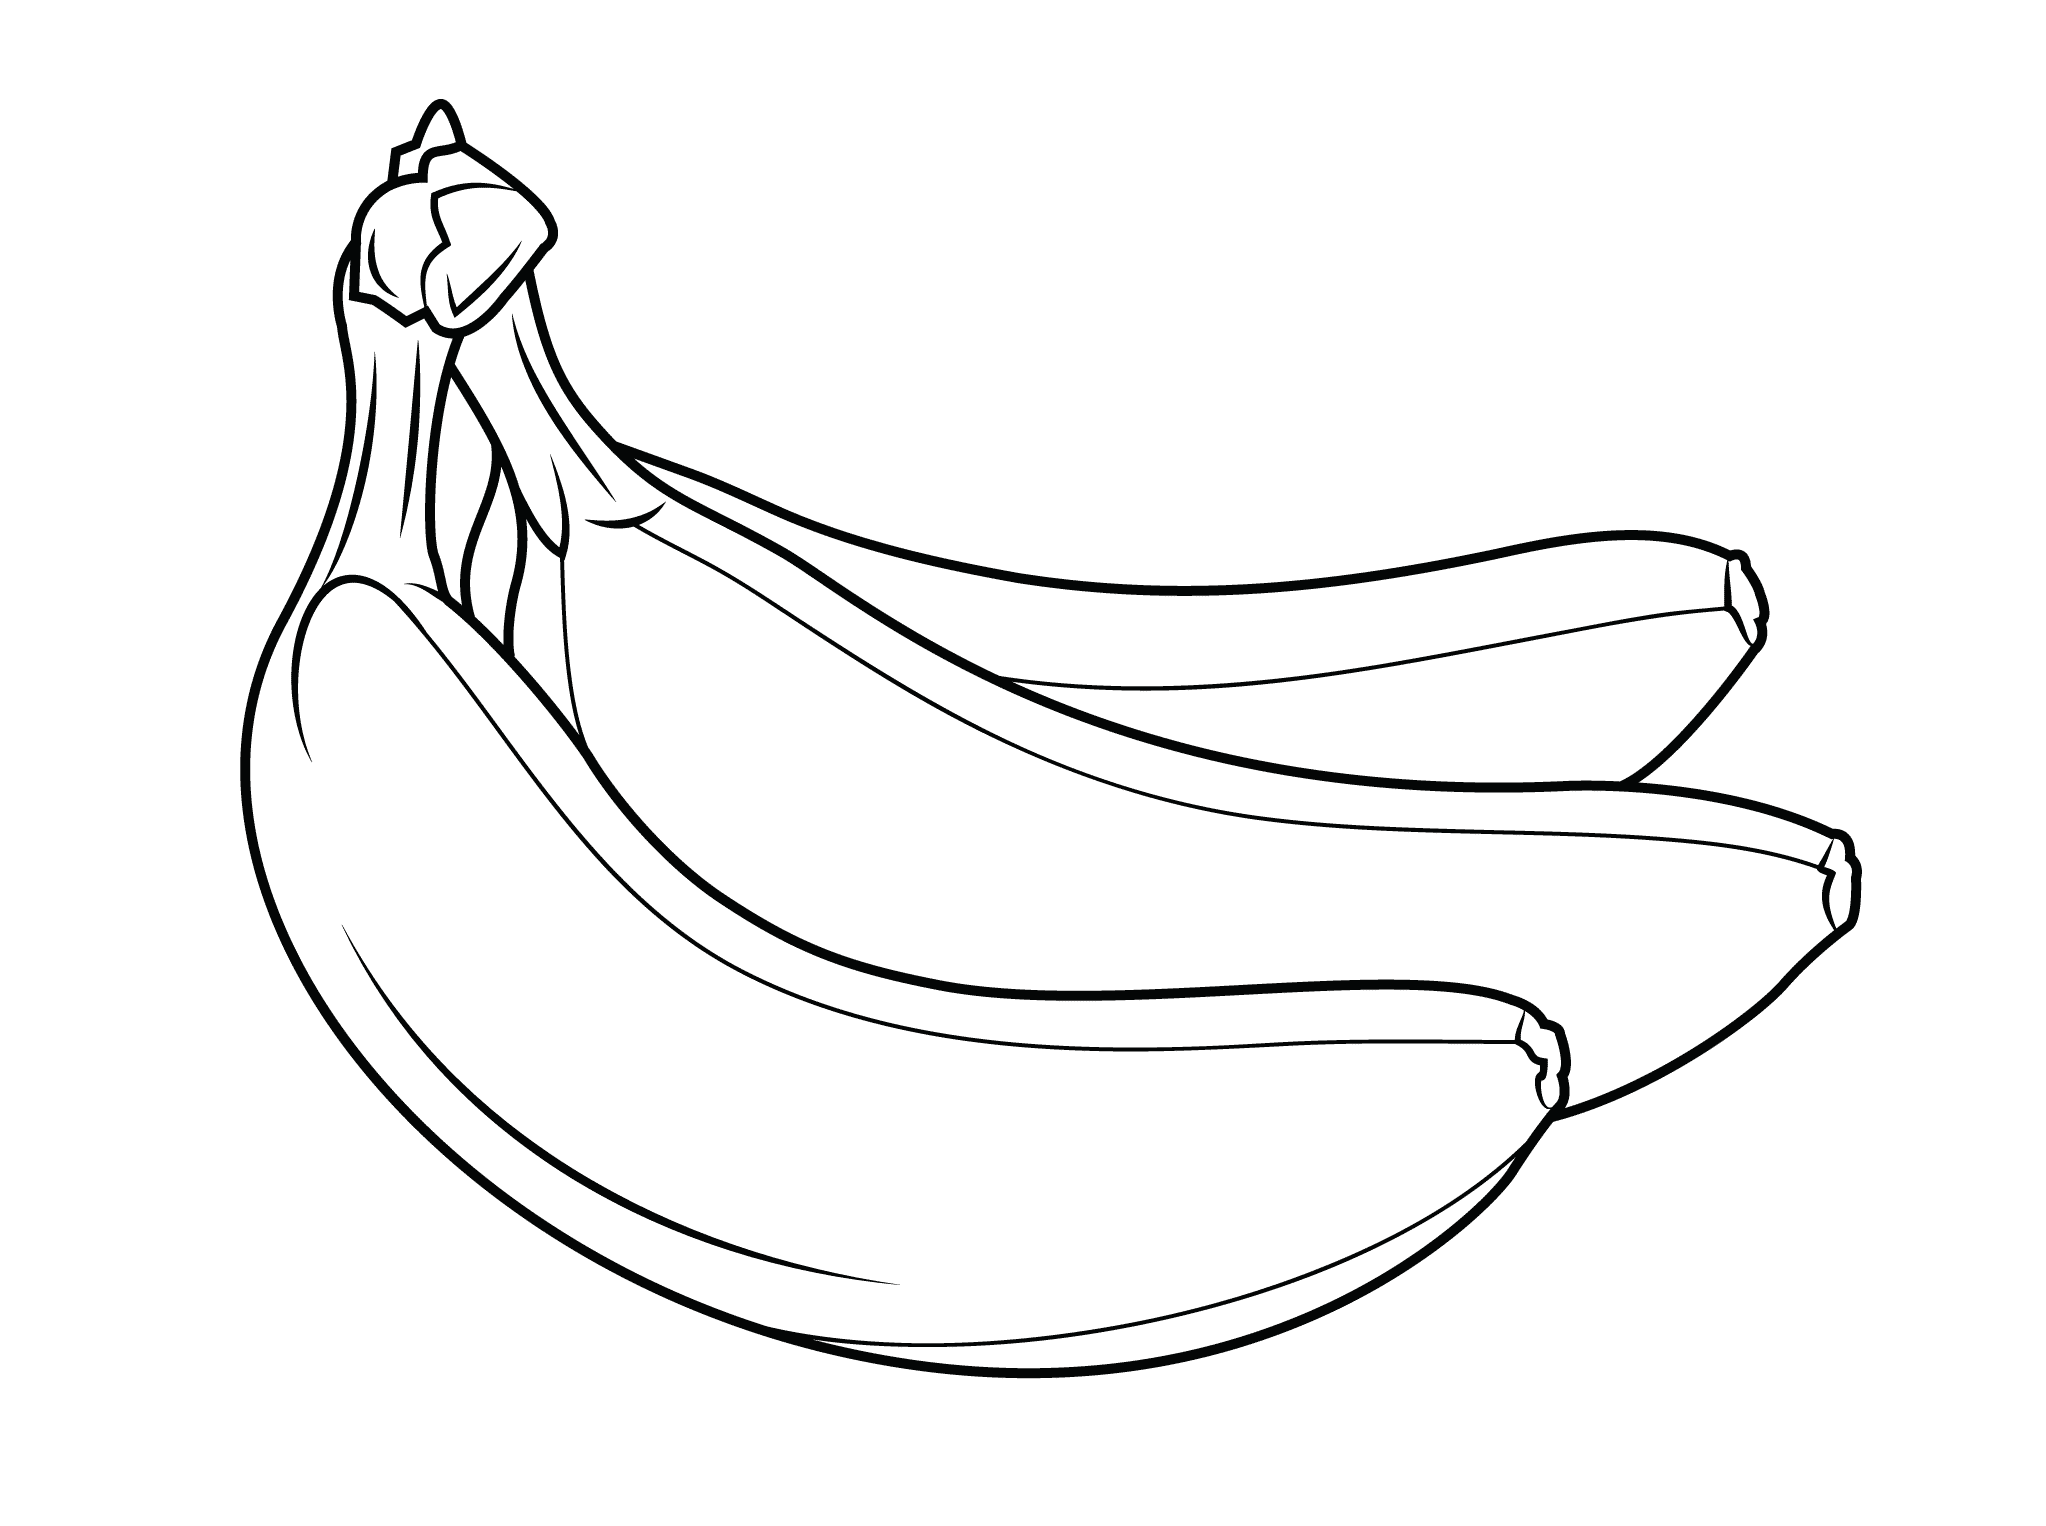 banana picture to color one banana fruits coloring pages coloring pages banane picture color to banana